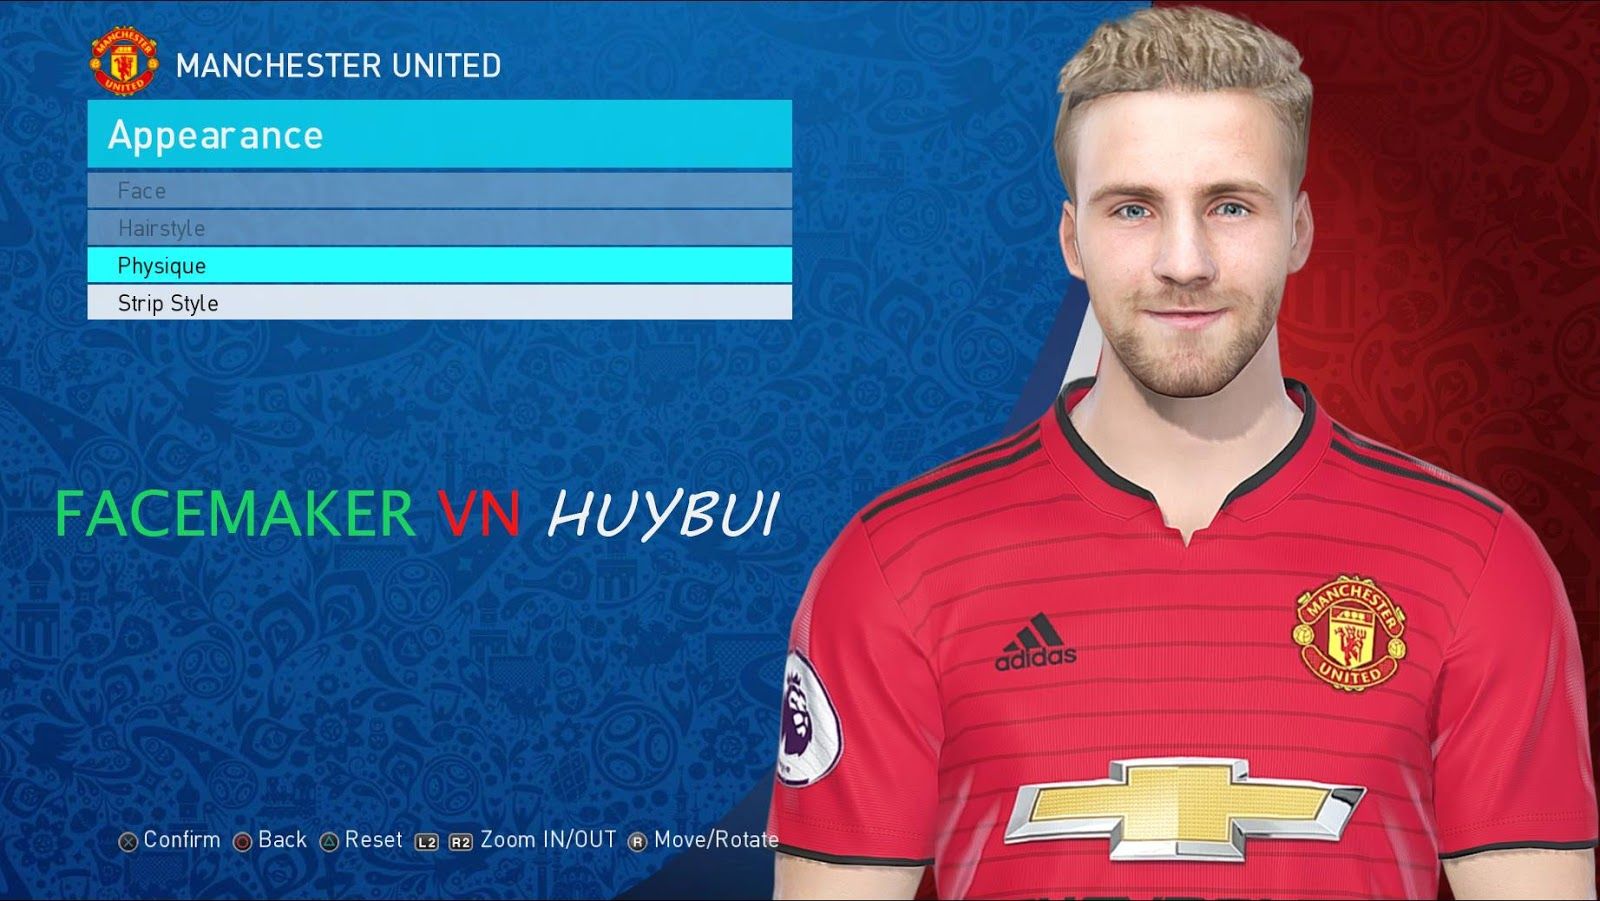 PES 2019 Luke Shaw by Facemaker VN HUY BUI